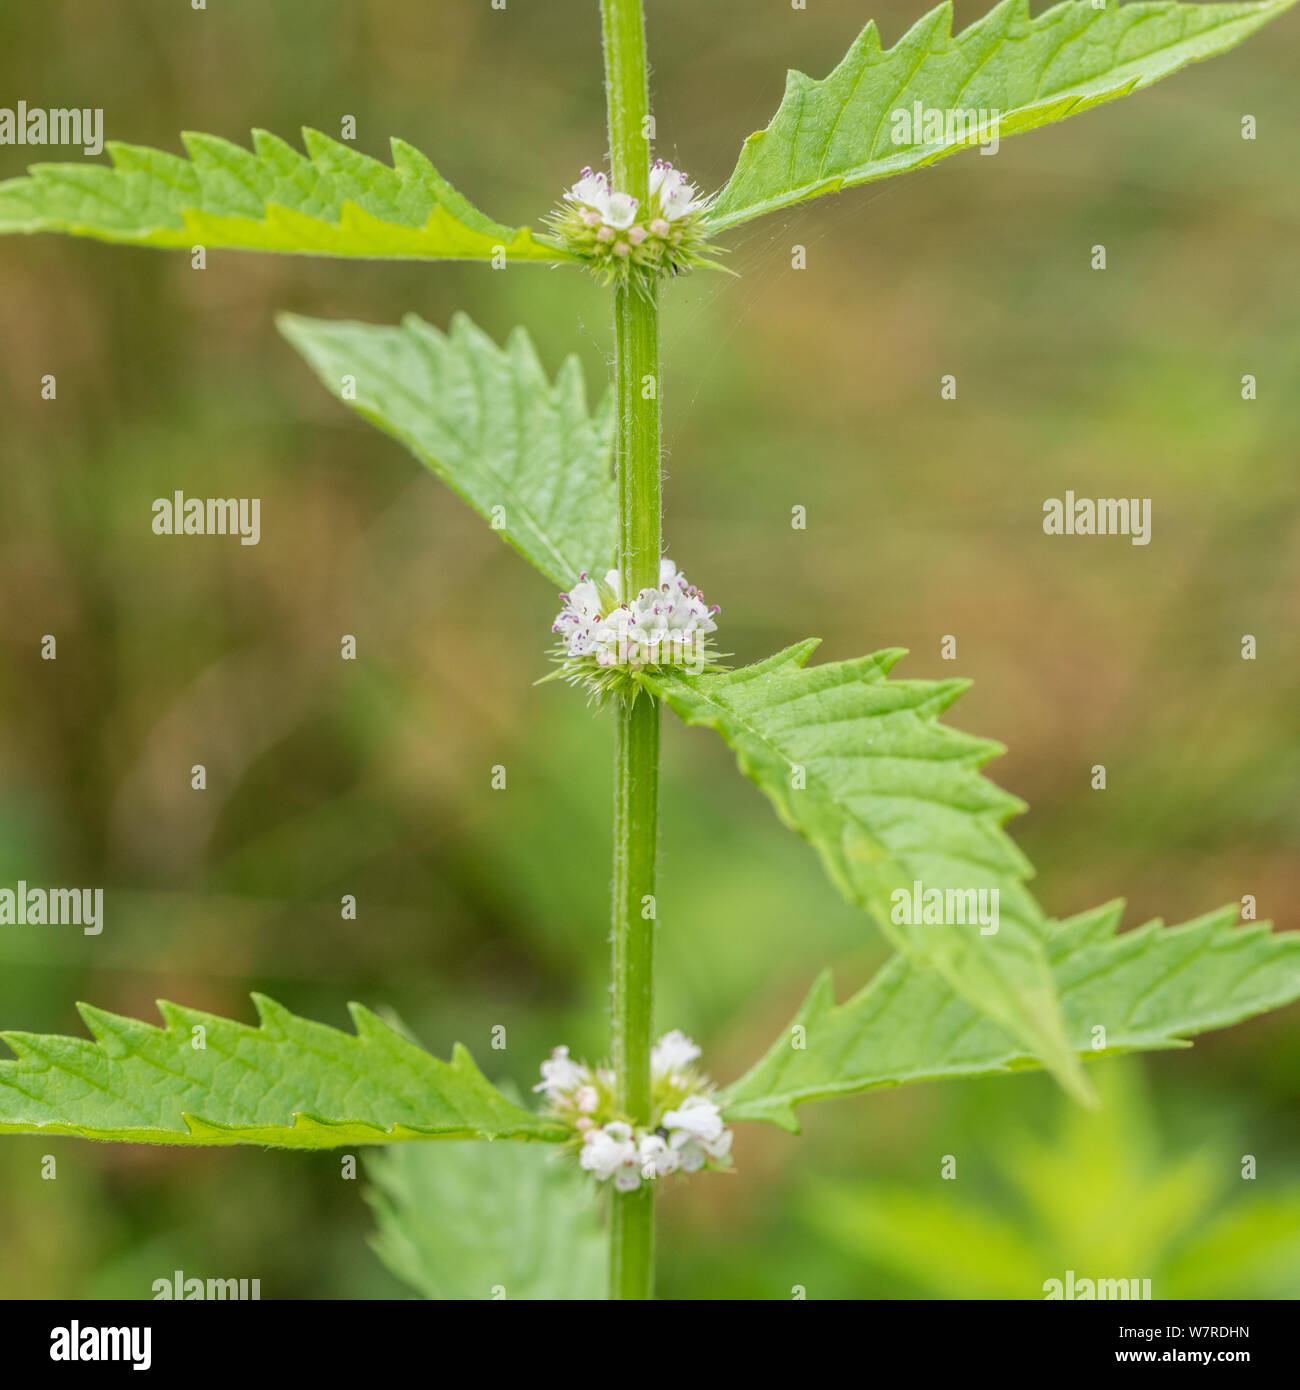 Flowering stalks of Gipsywort / Gypsywort - Lycopus europaeus - at pond edge. Once used as medicinal plant in herbal remedies. Hygrophilous plants. Stock Photo